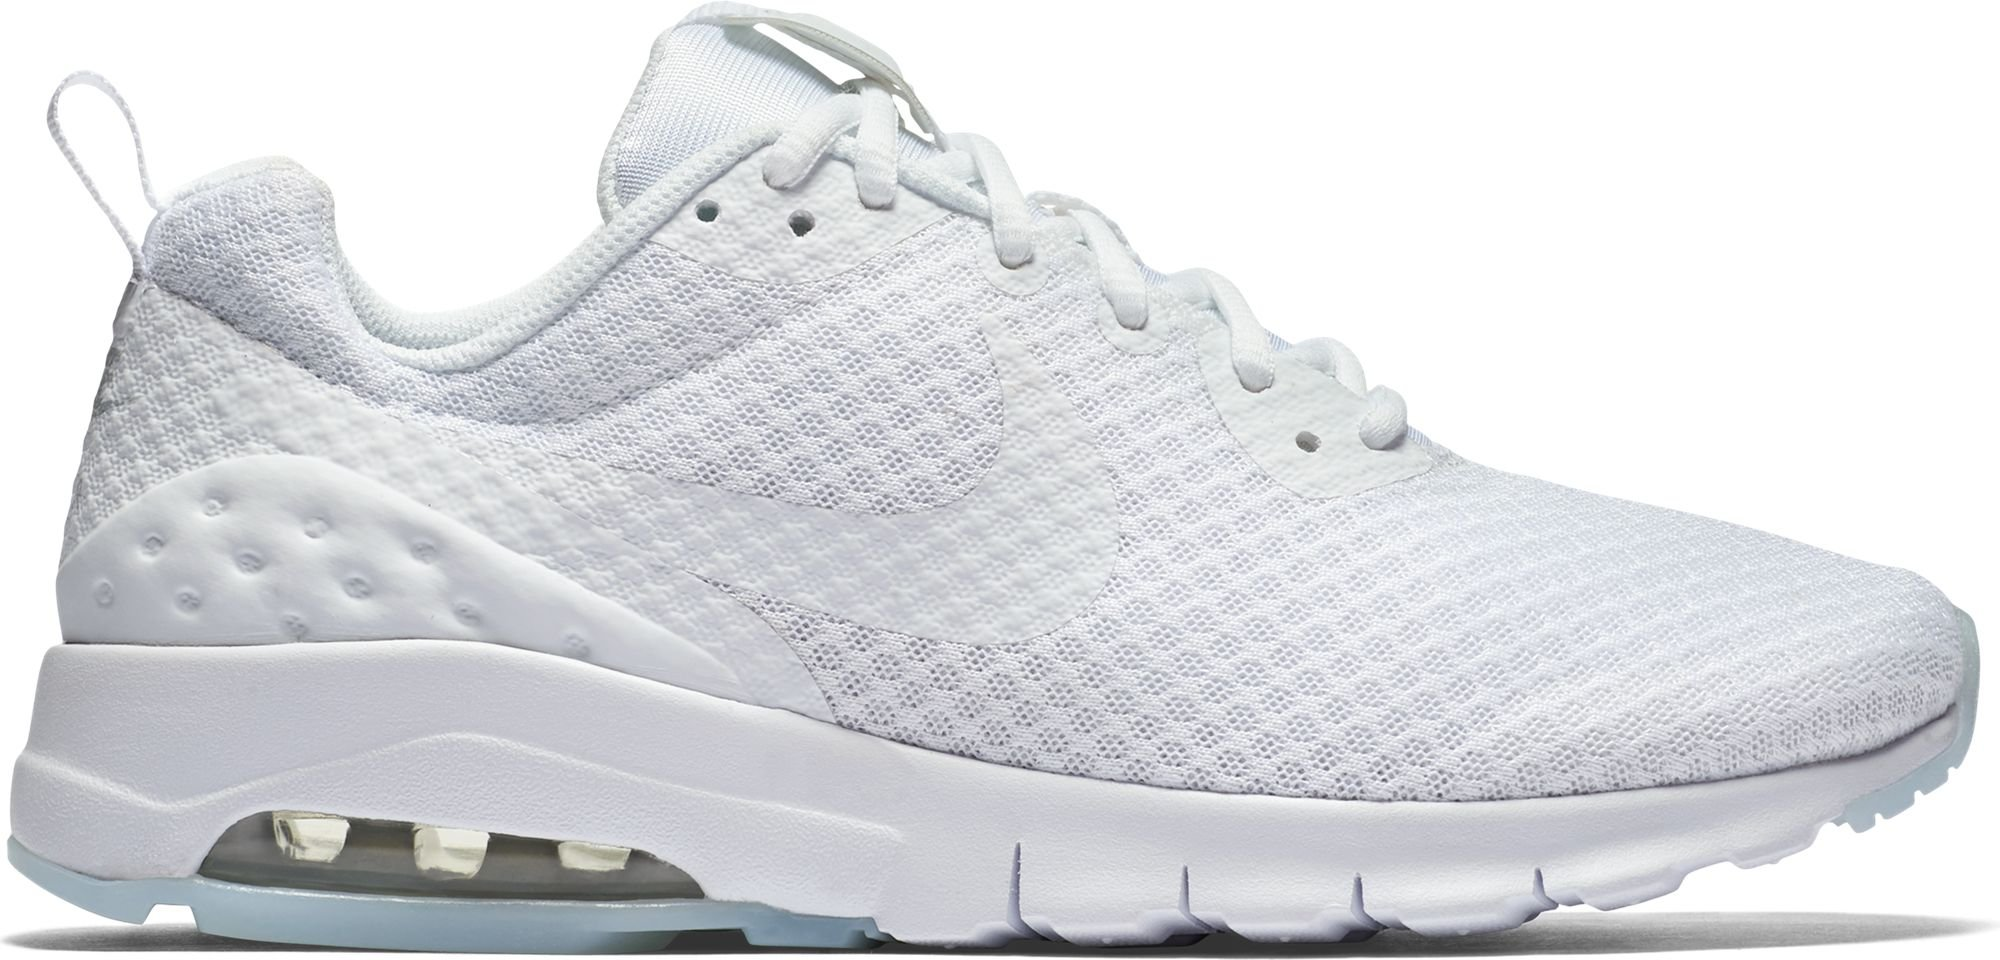 new styles 6ddc5 7b81a Galleon - Nike Women s Air Max Motion LW Running Shoe, White White, 6.5 M US